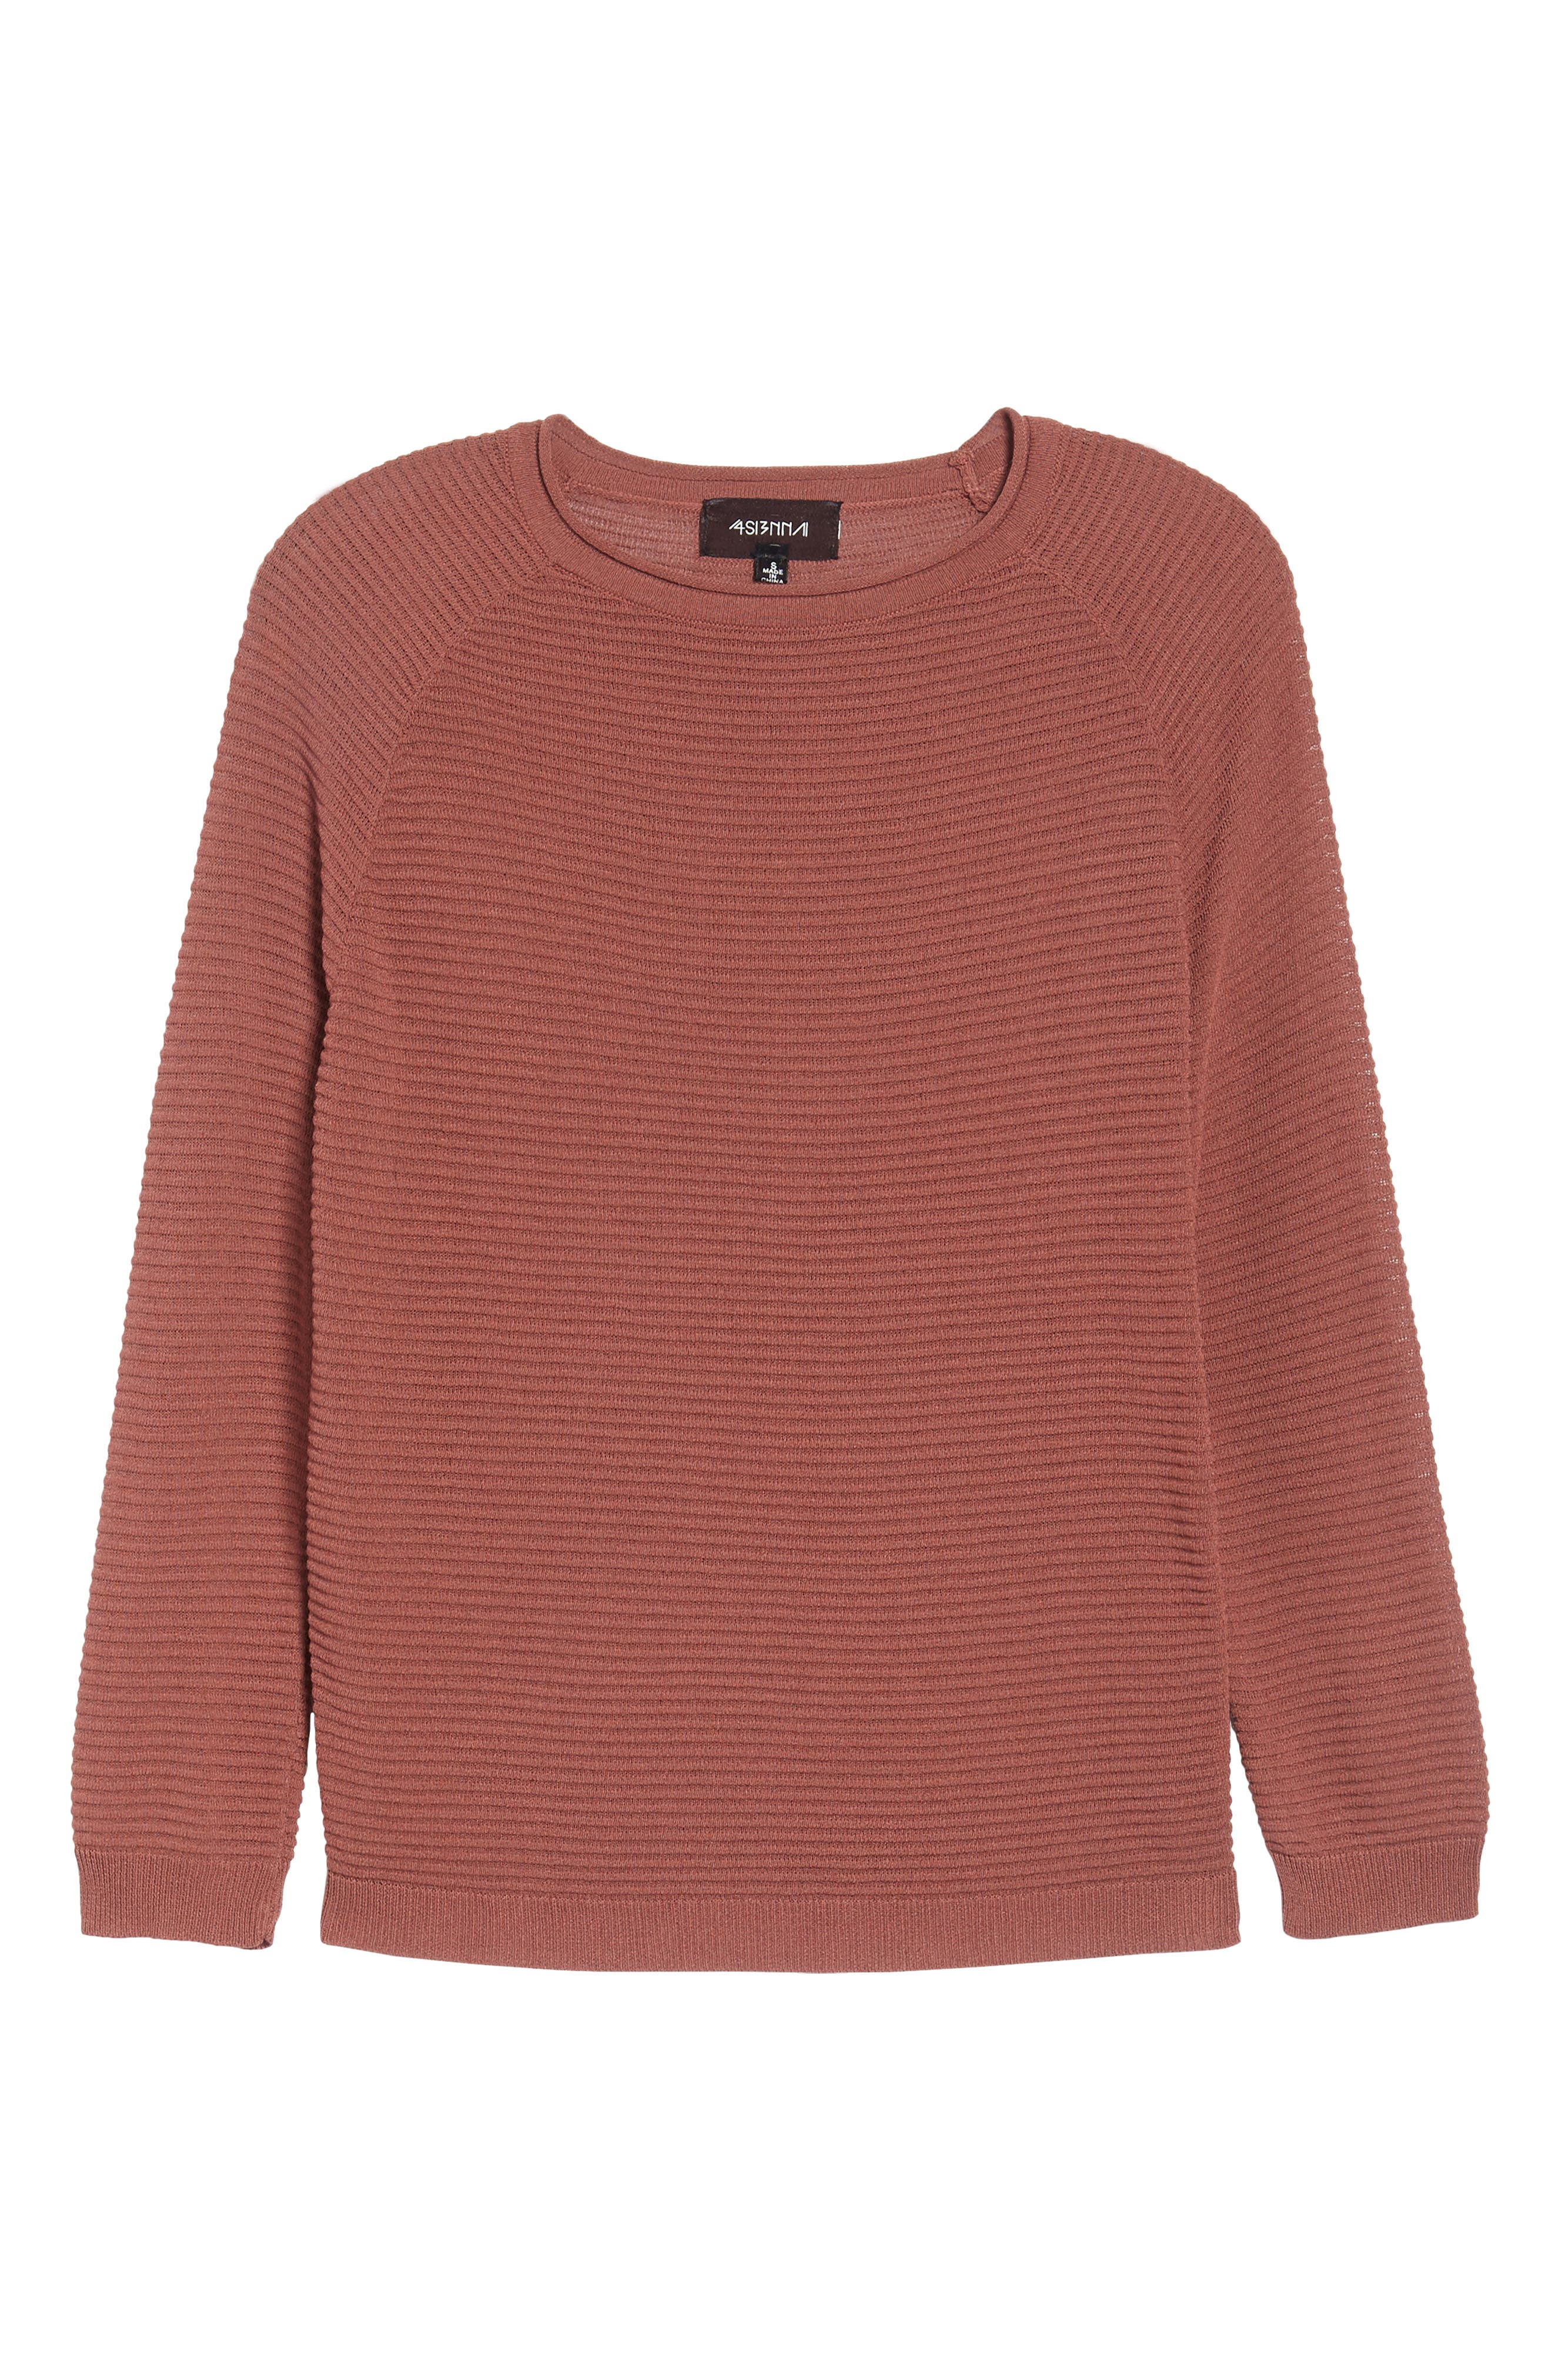 Ribbed Sweatshirt,                             Alternate thumbnail 7, color,                             Dusty Copper